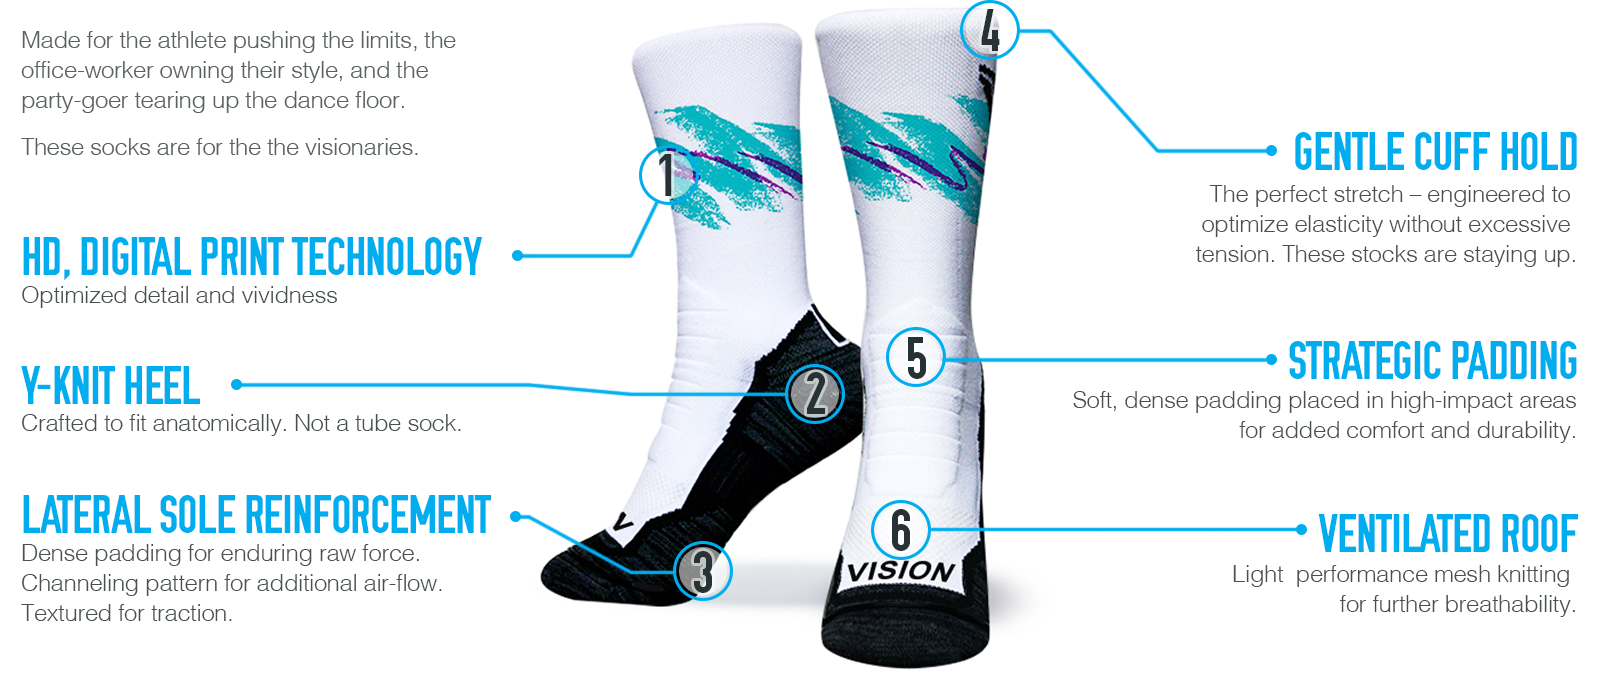 Performance compression sock technology